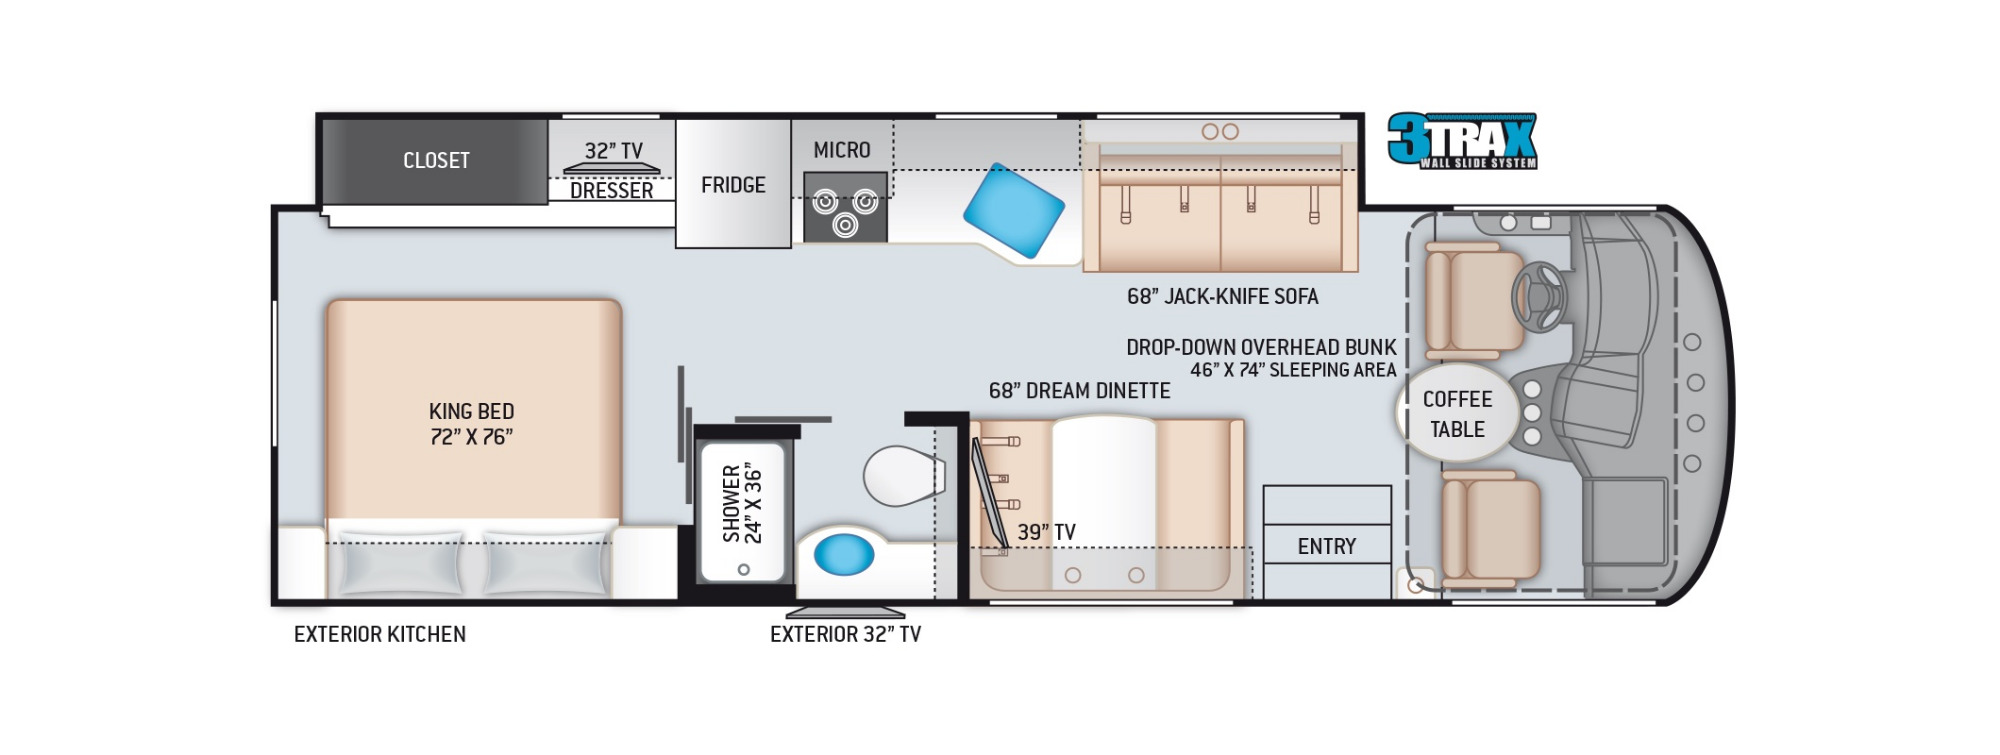 View Floor Plan for 2022 THOR FREEDOM TRAVELER A29